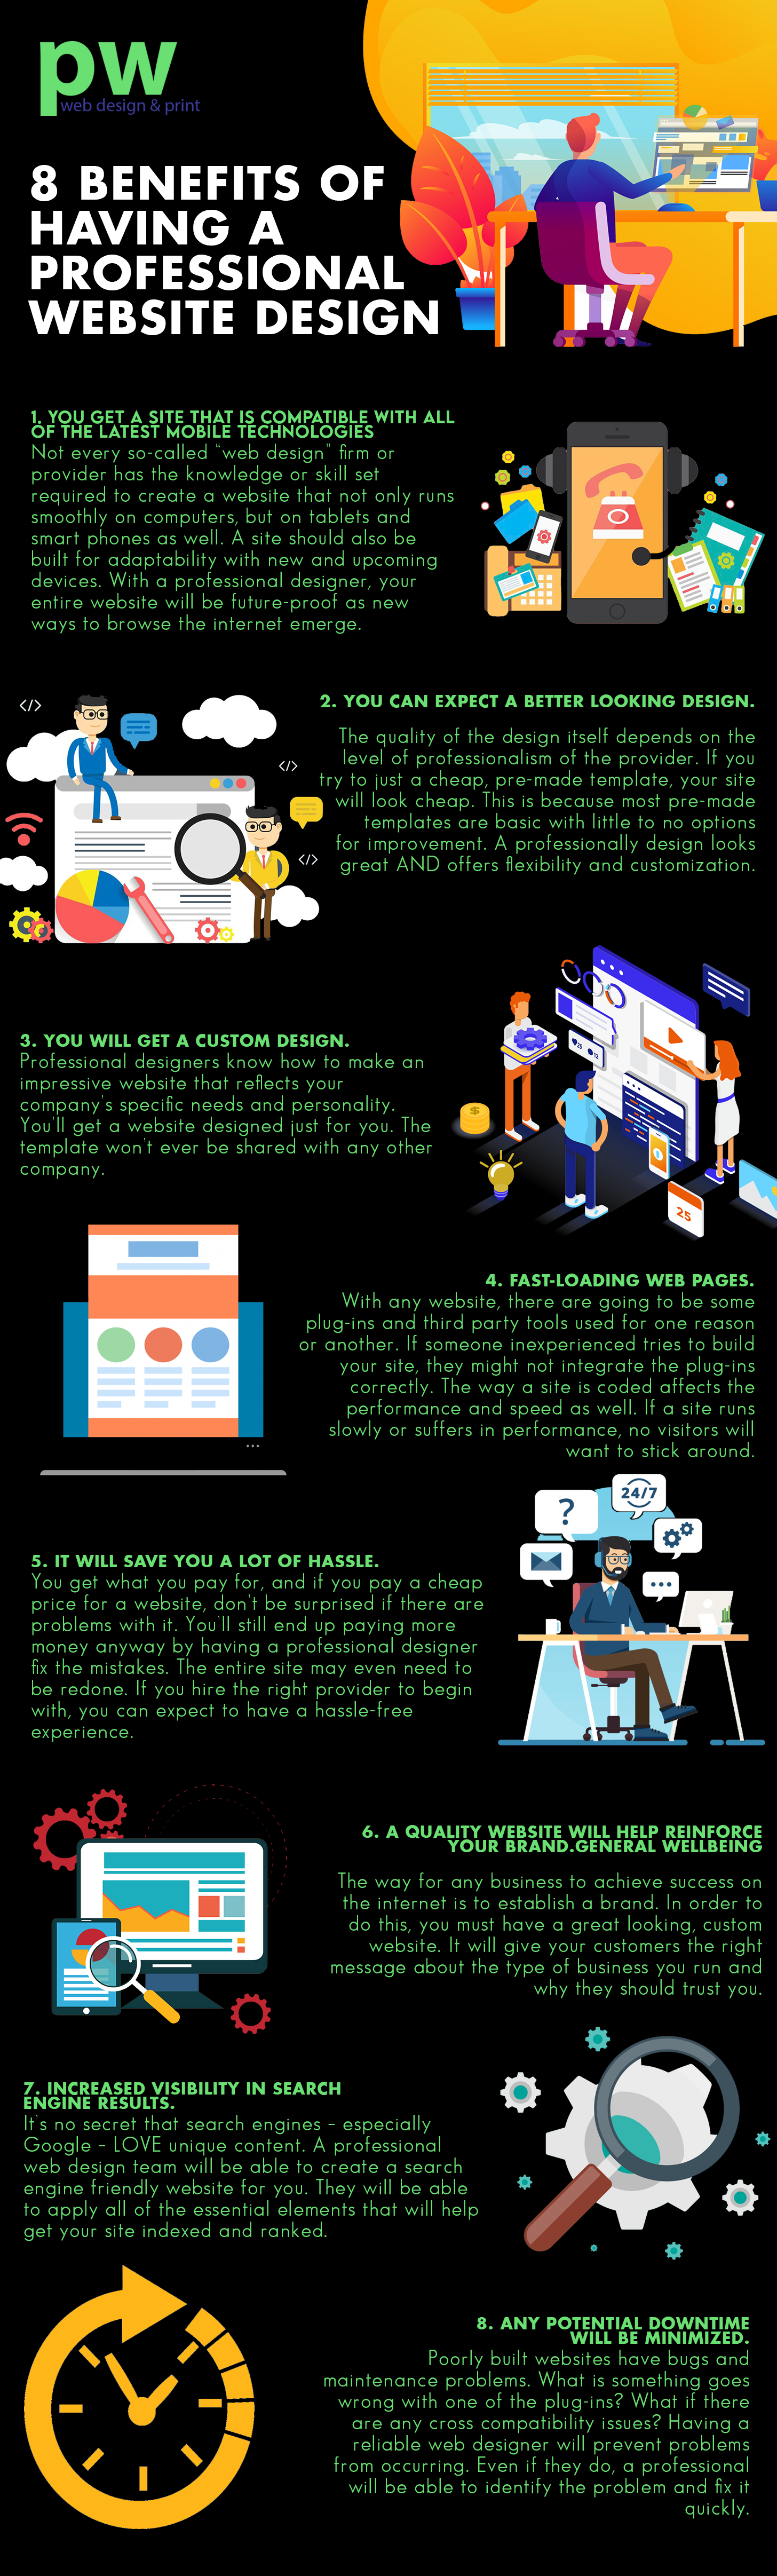 Infographic 8 Benefits Of Having A Professional Web Design In 2020 Web Design Professional Website Design Website Design